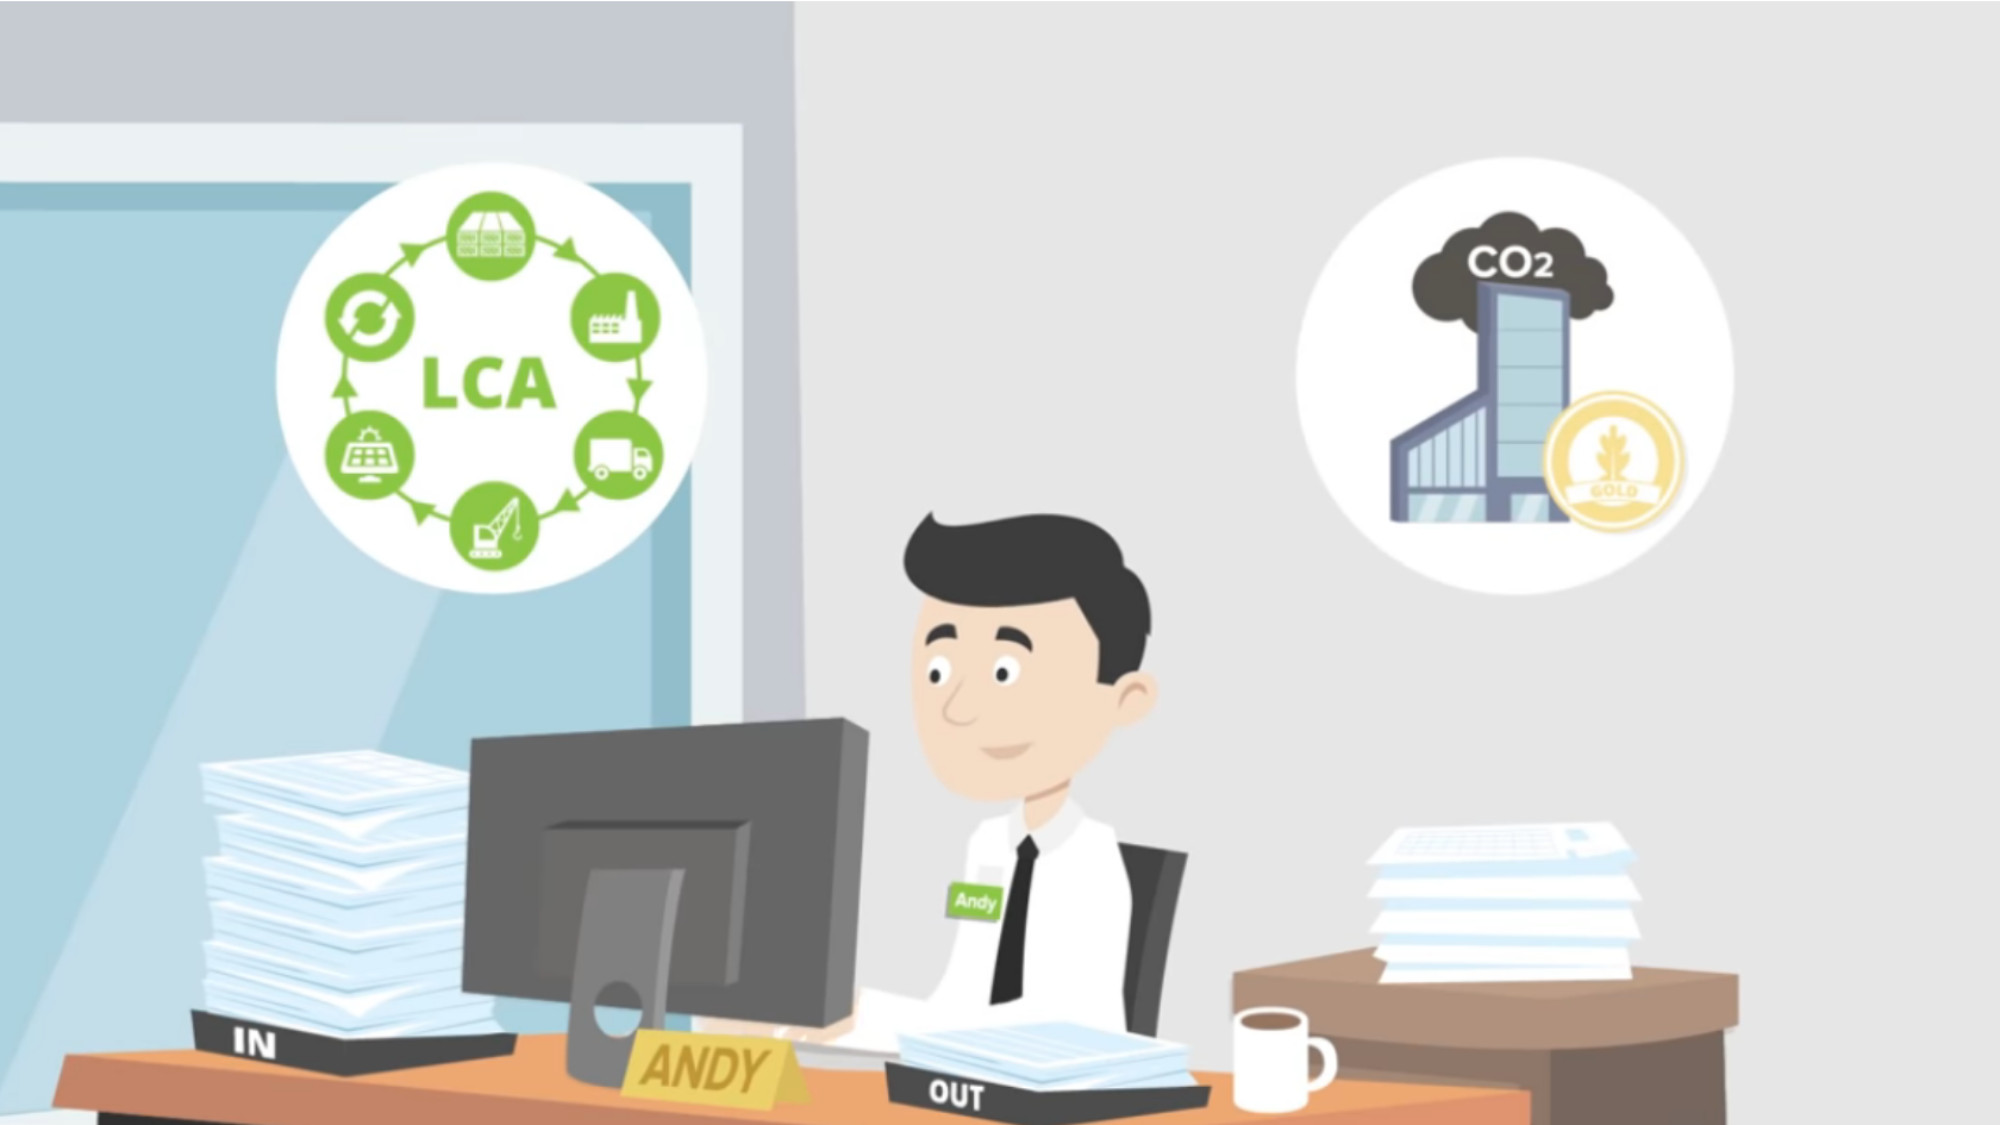 The easy-to-use software is for designing and building in an environmentally sustainable way.